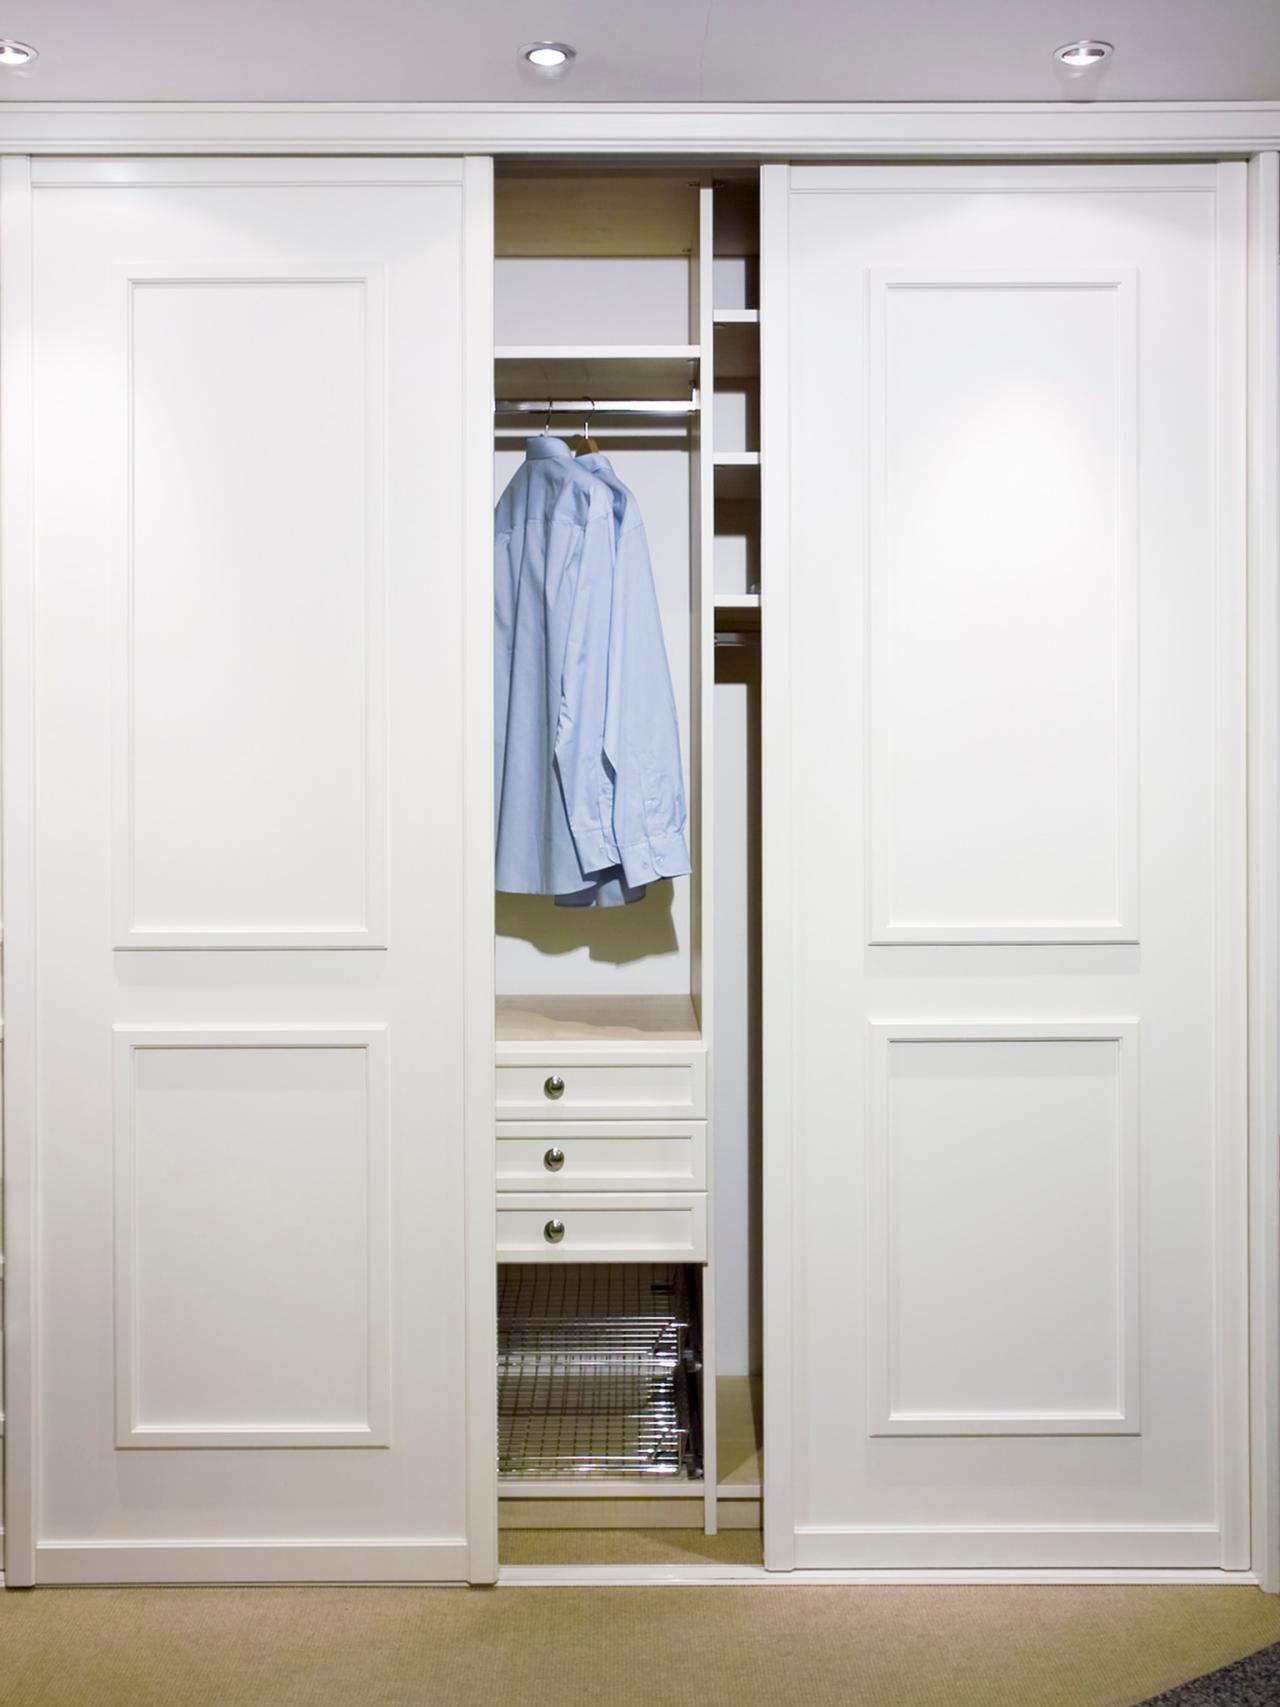 Awesome Sliding Closet Doors: Design Ideas and Options closet sliding doors